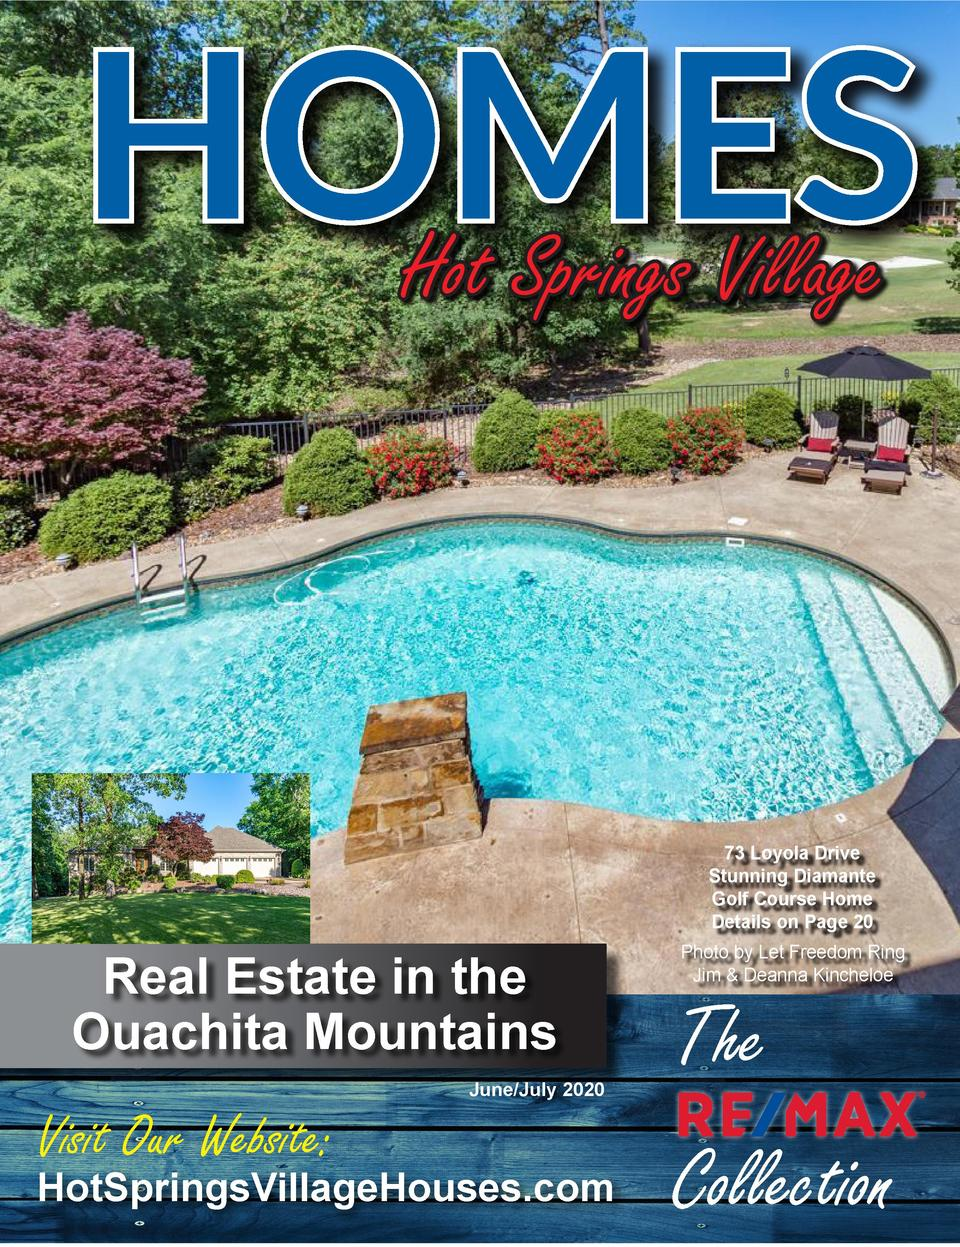 HOMES Hot Springs Village 73 Loyola Drive Stunning Diamante Golf Course Home Details on Page 20  Real Estate in the Ouachi...